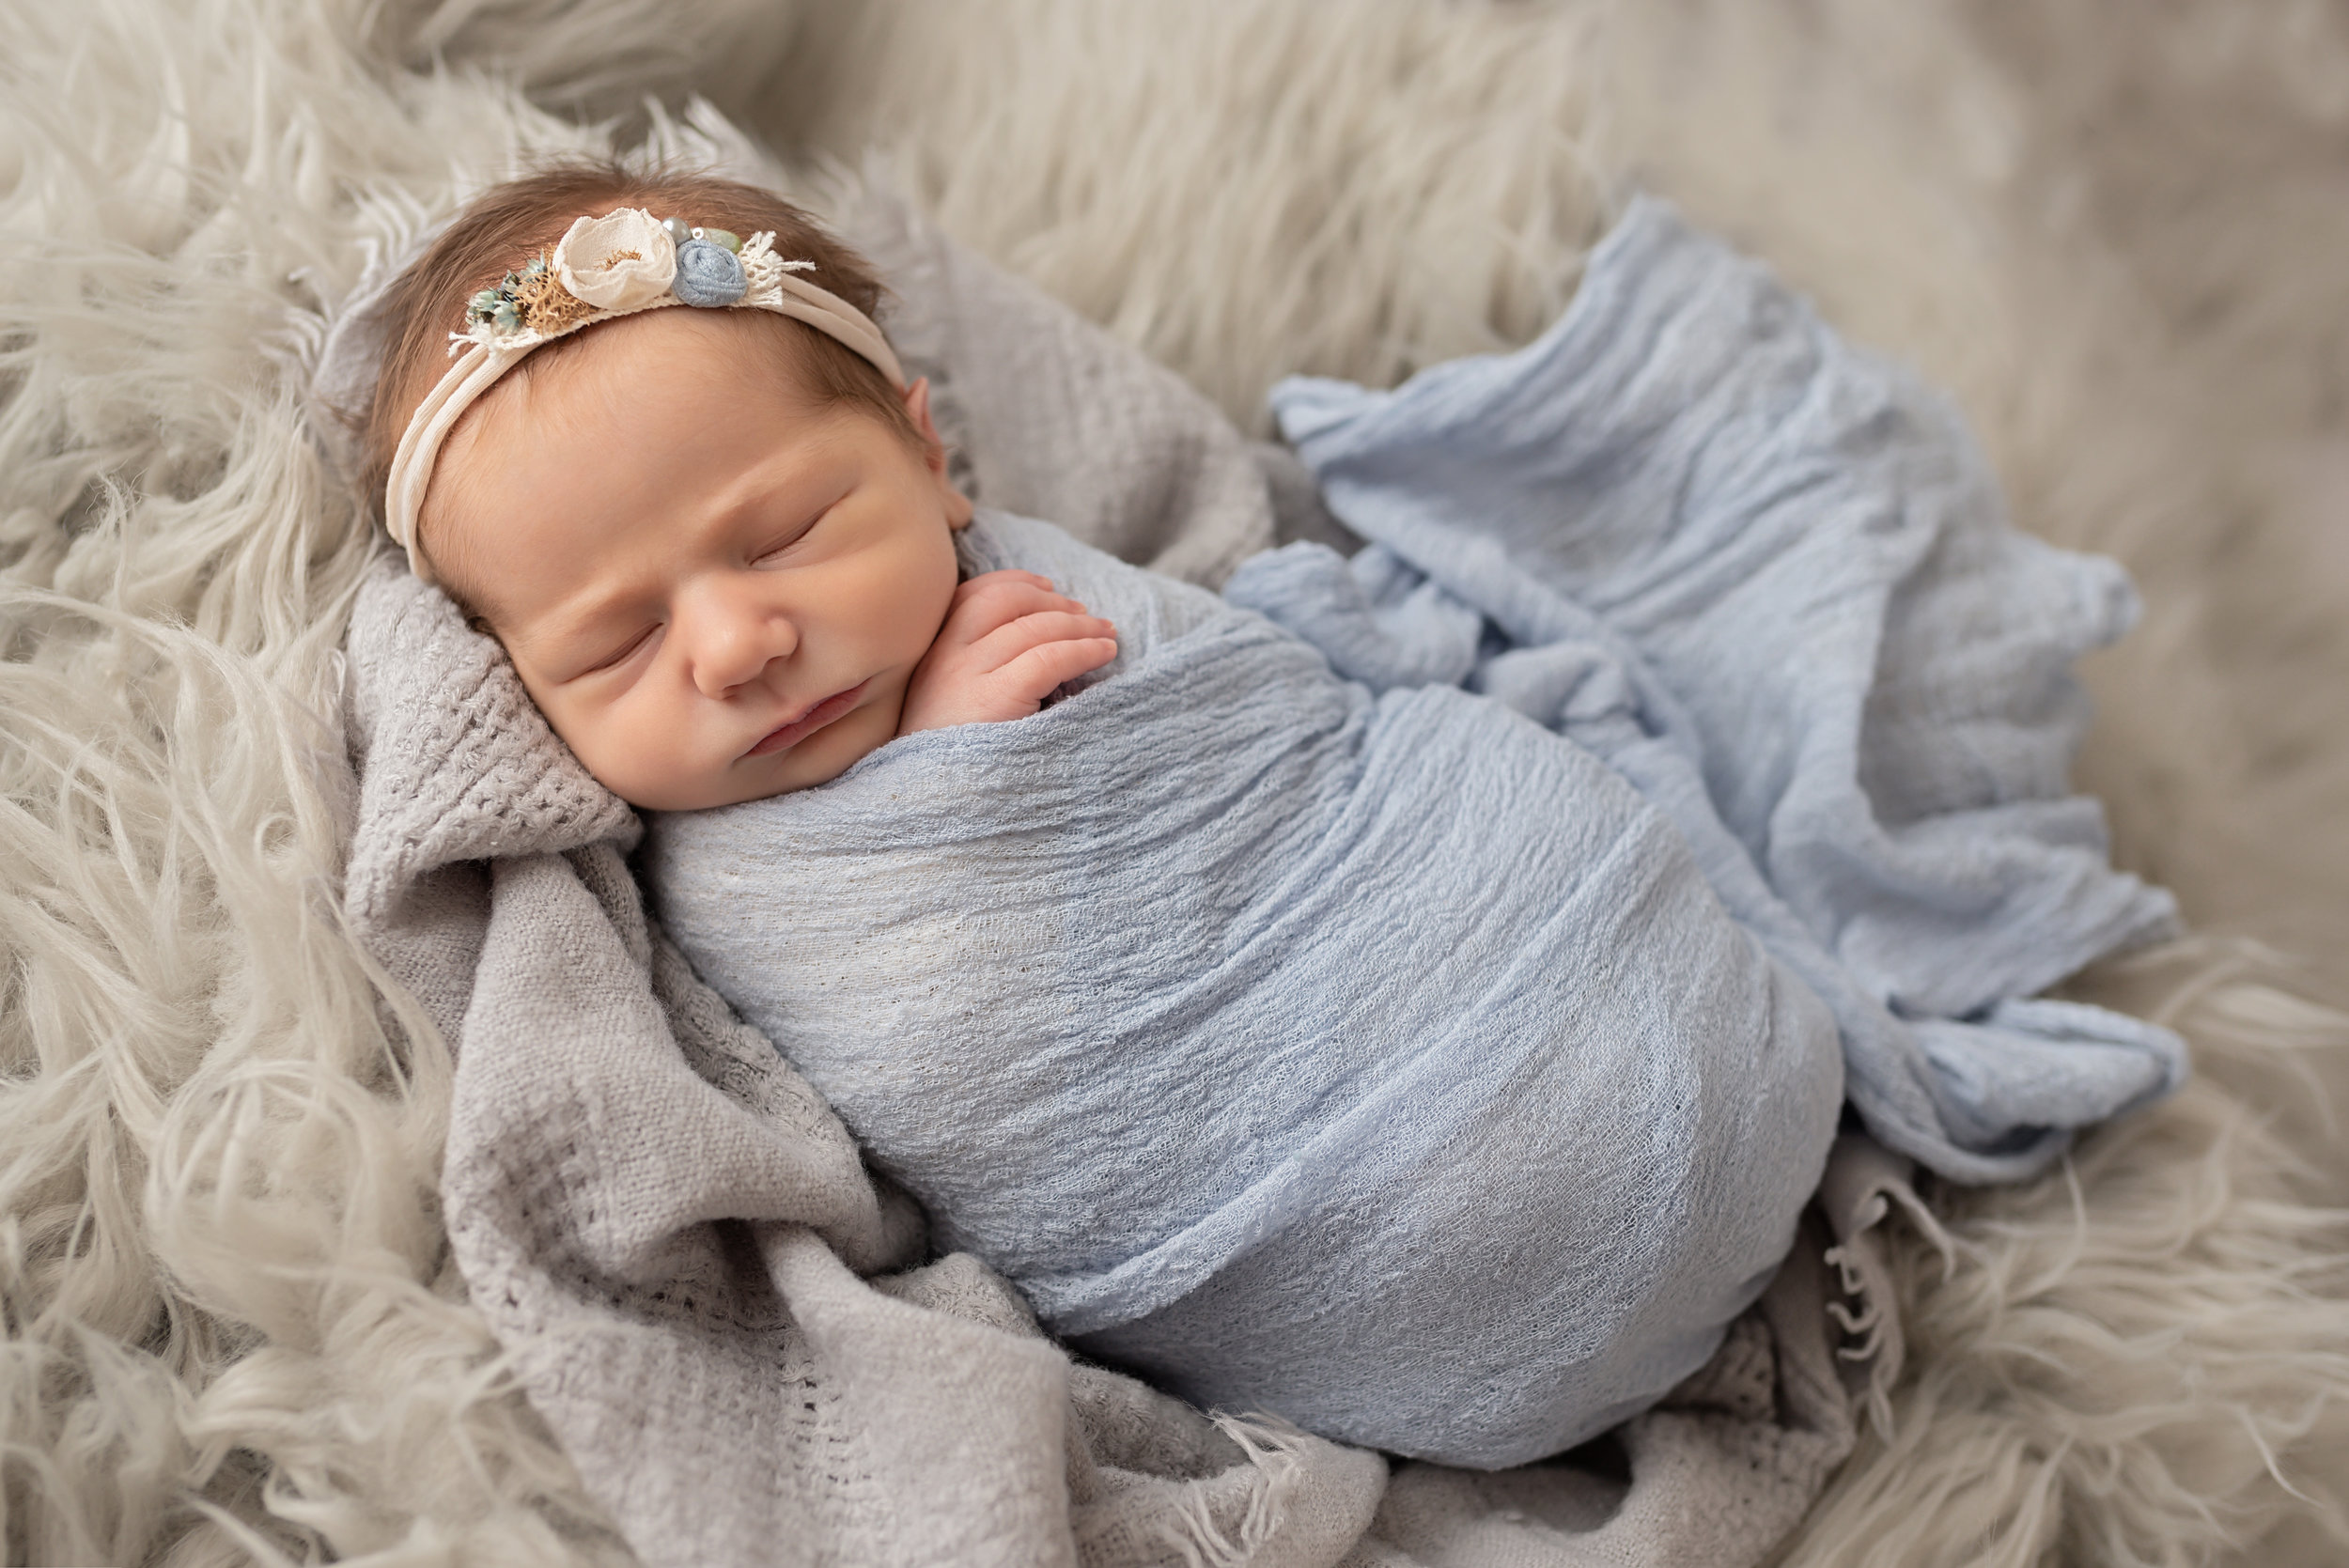 Charleston-Newborn-Photographer-FSP_8714 copy.jpg